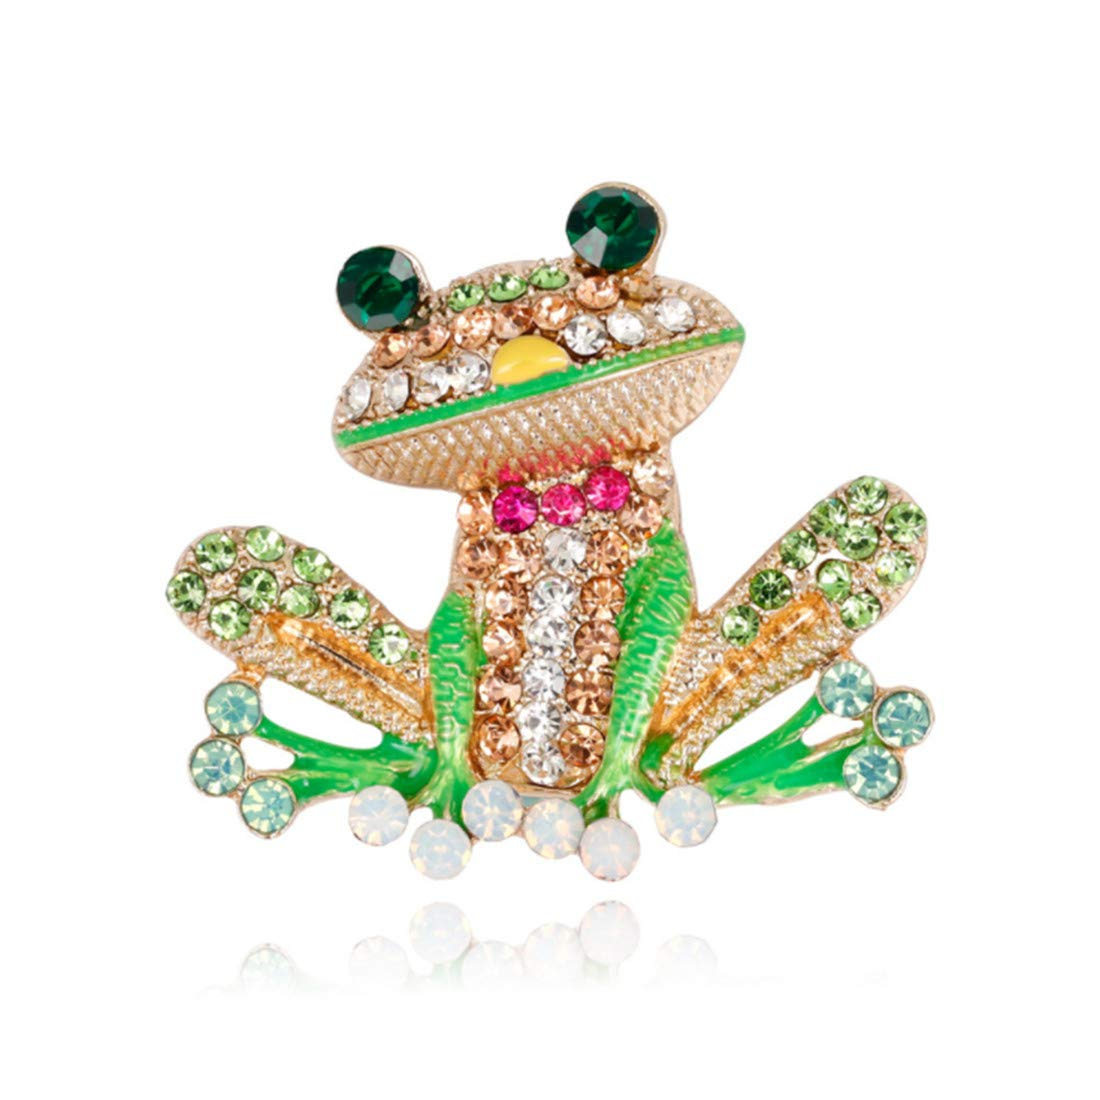 UINKE Cute Rhinestone Frog Brooch Pins Animal Enamel Badge Lapel Pin Women Jewelry Accessories